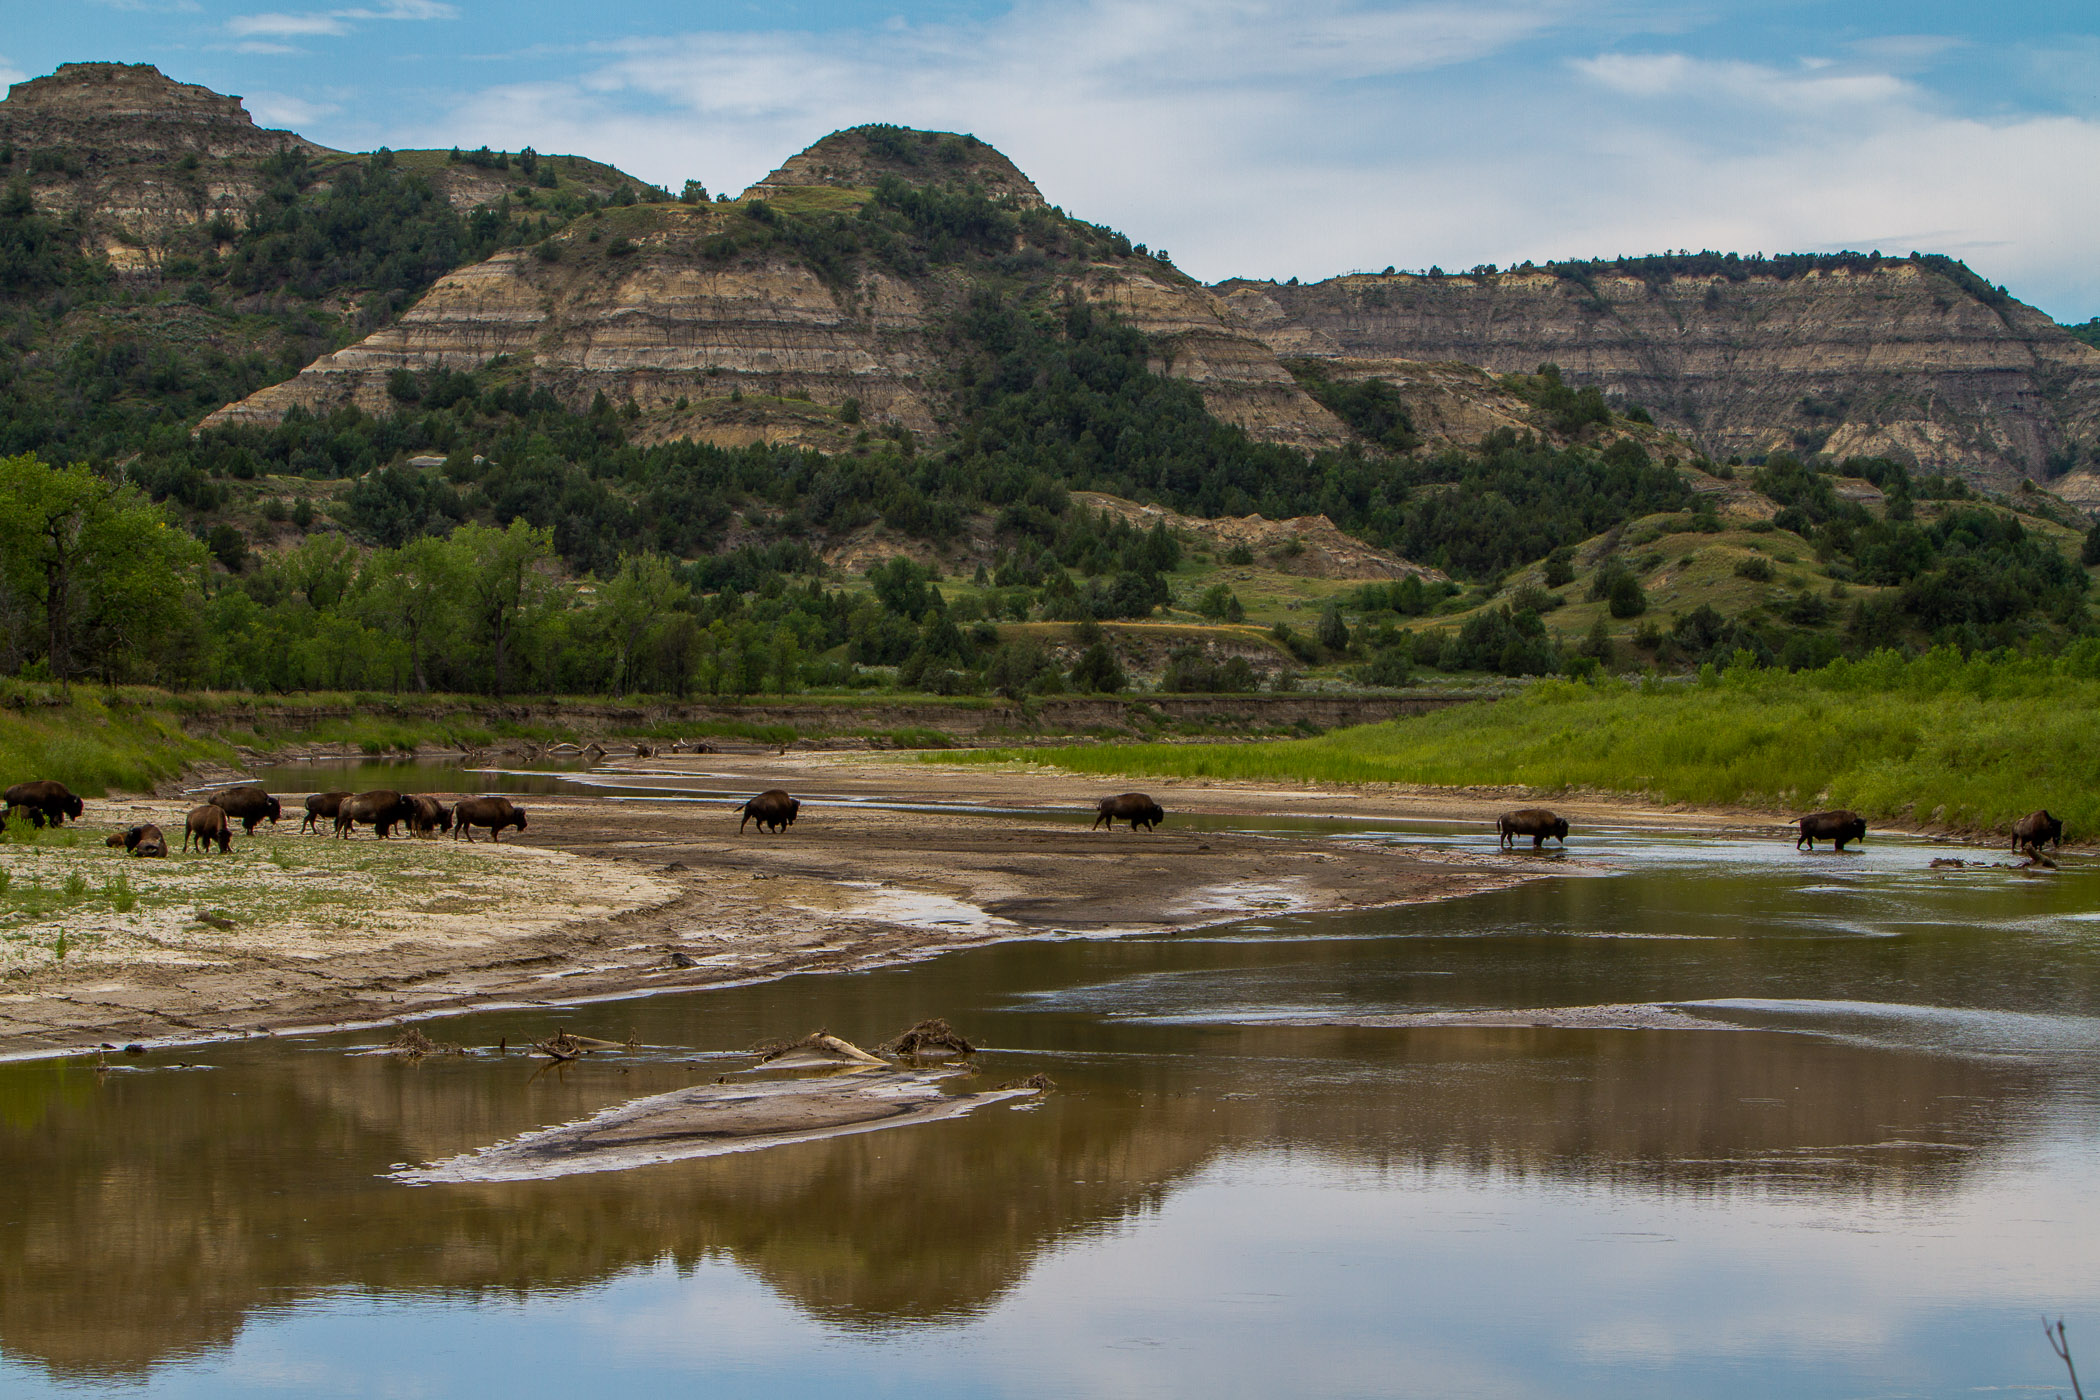 River Crossing - Theodore Roosevelt National Park